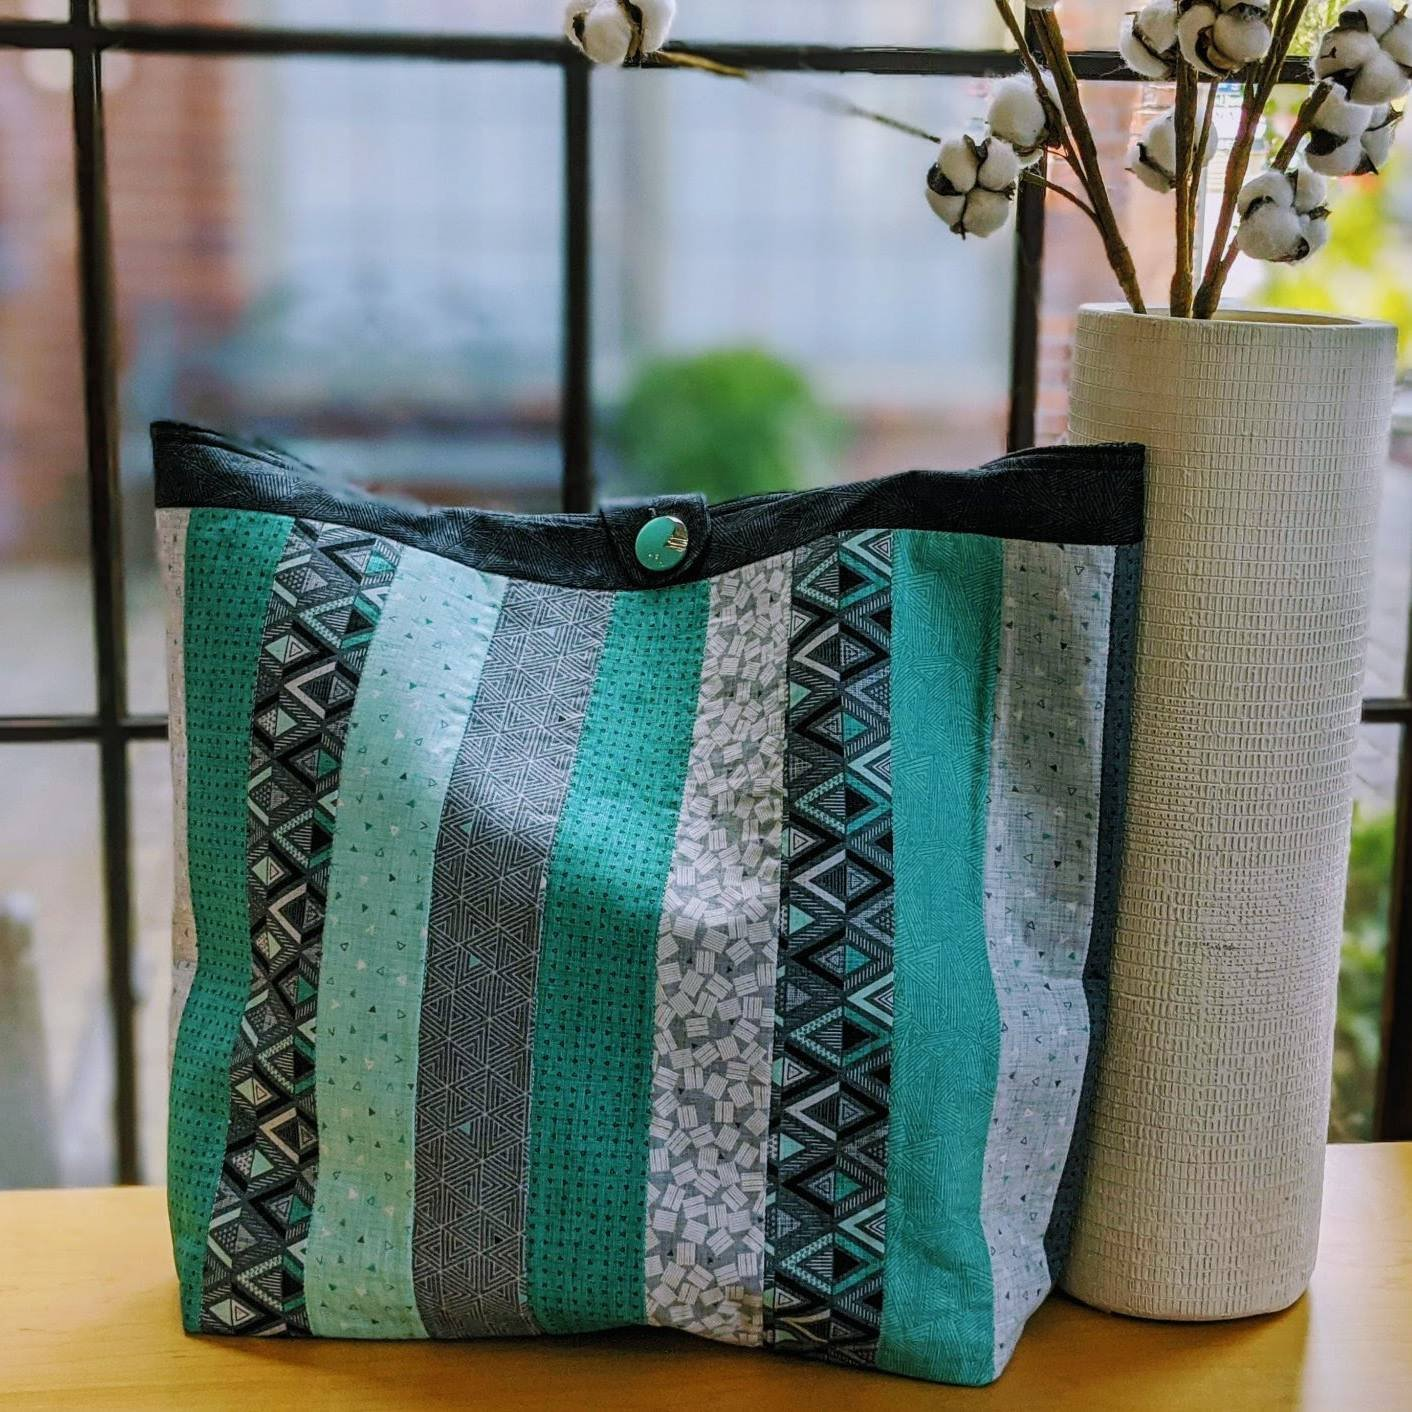 Cosmo Bag (15x6x17)